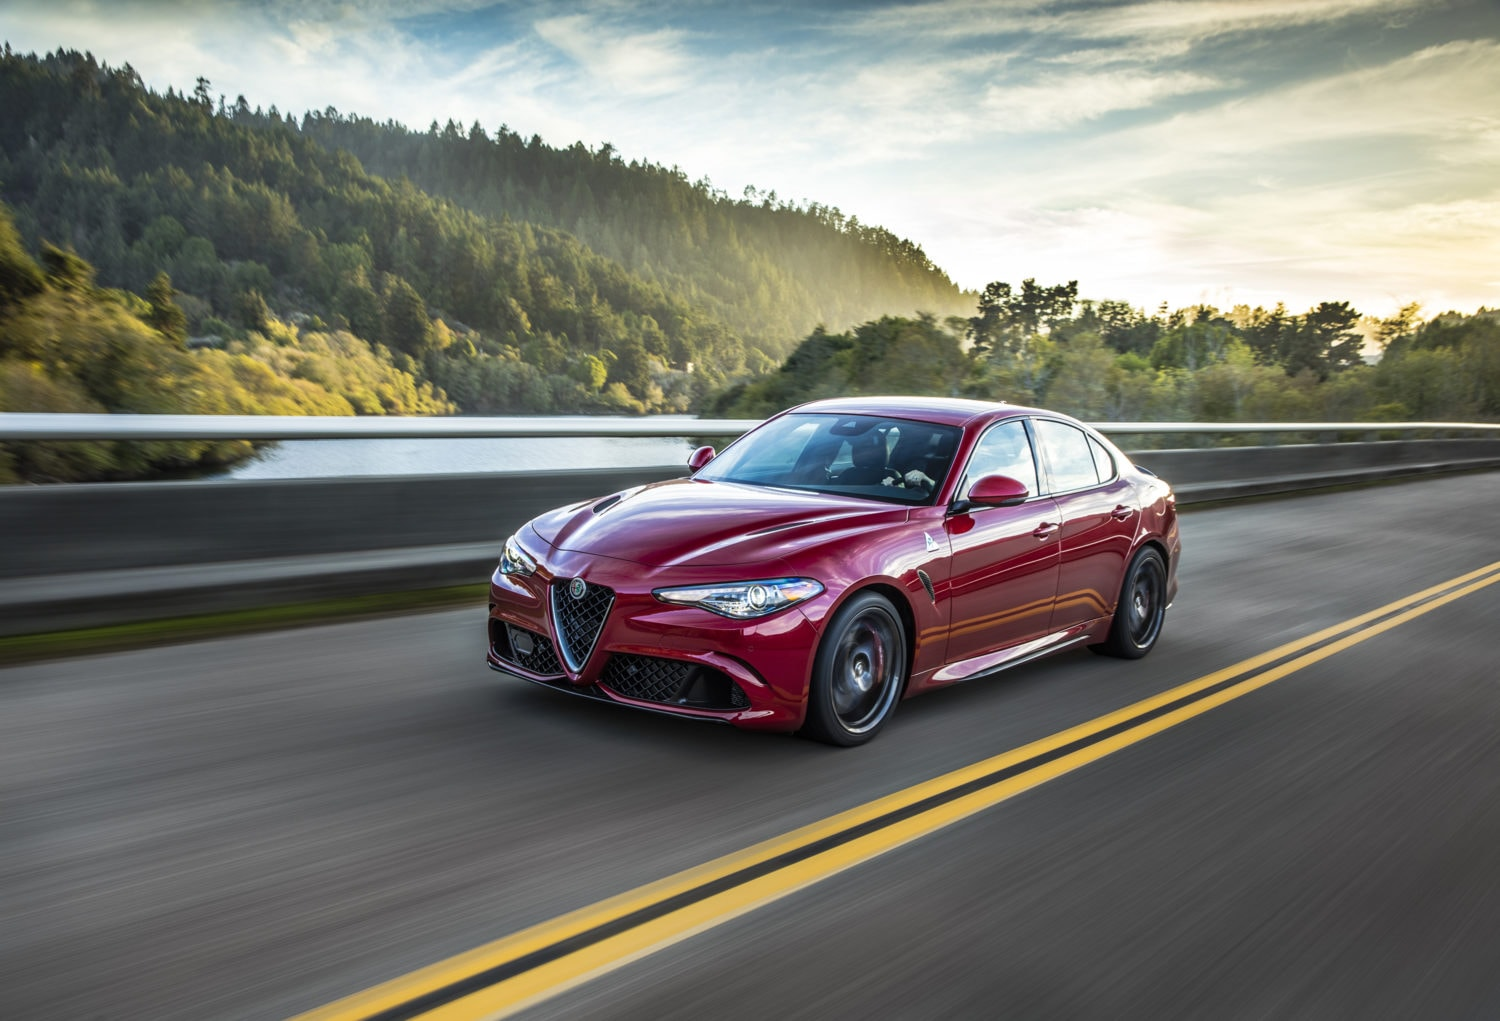 2019 Alfa Romeo Giulia Quadrifoglio Luxury Car Of The Year Focus